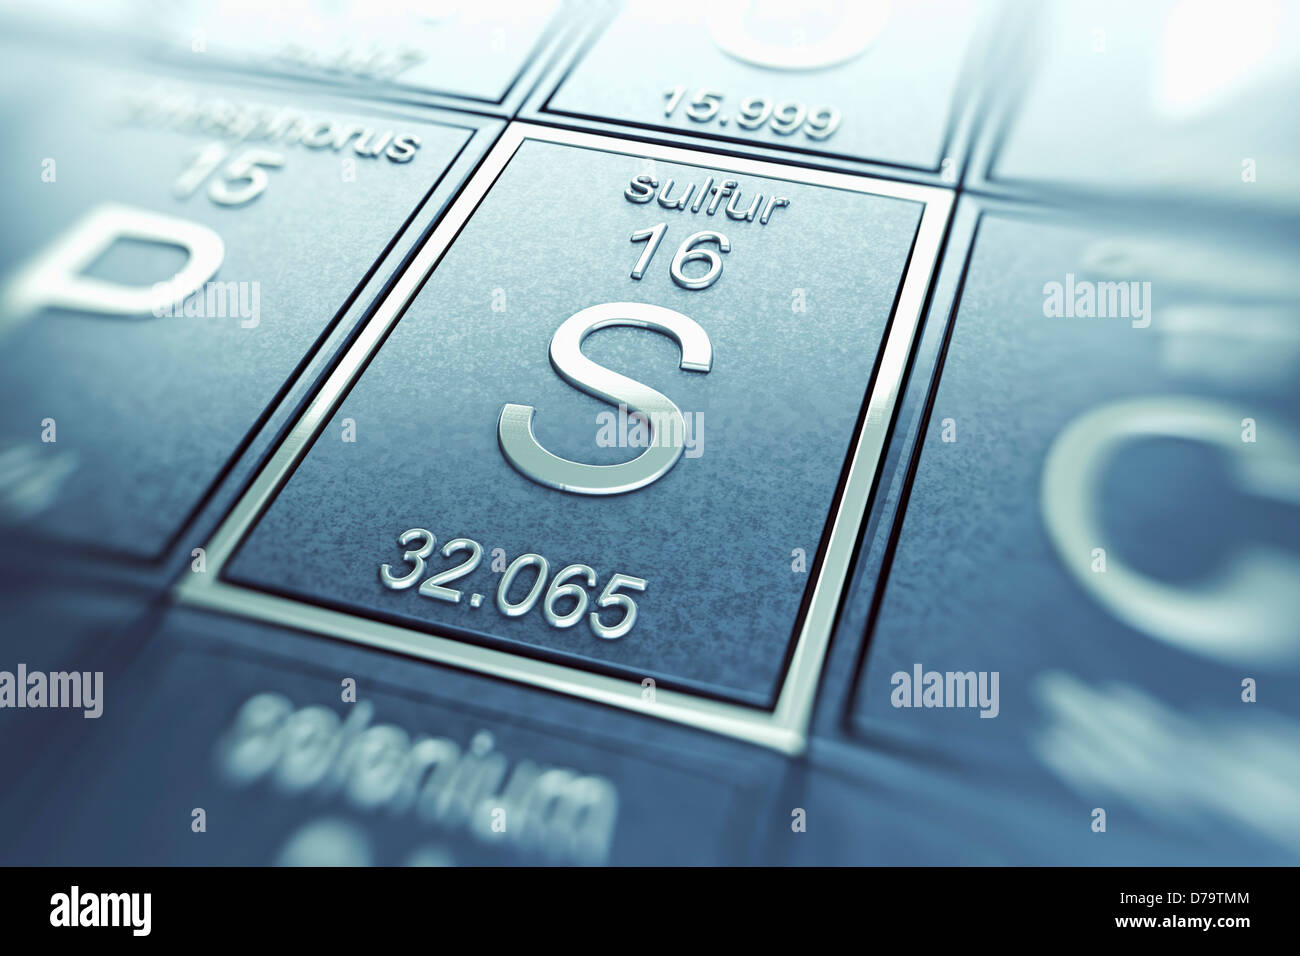 Sulfur chemical element stock photo royalty free image 56150660 sulfur chemical element buycottarizona Image collections